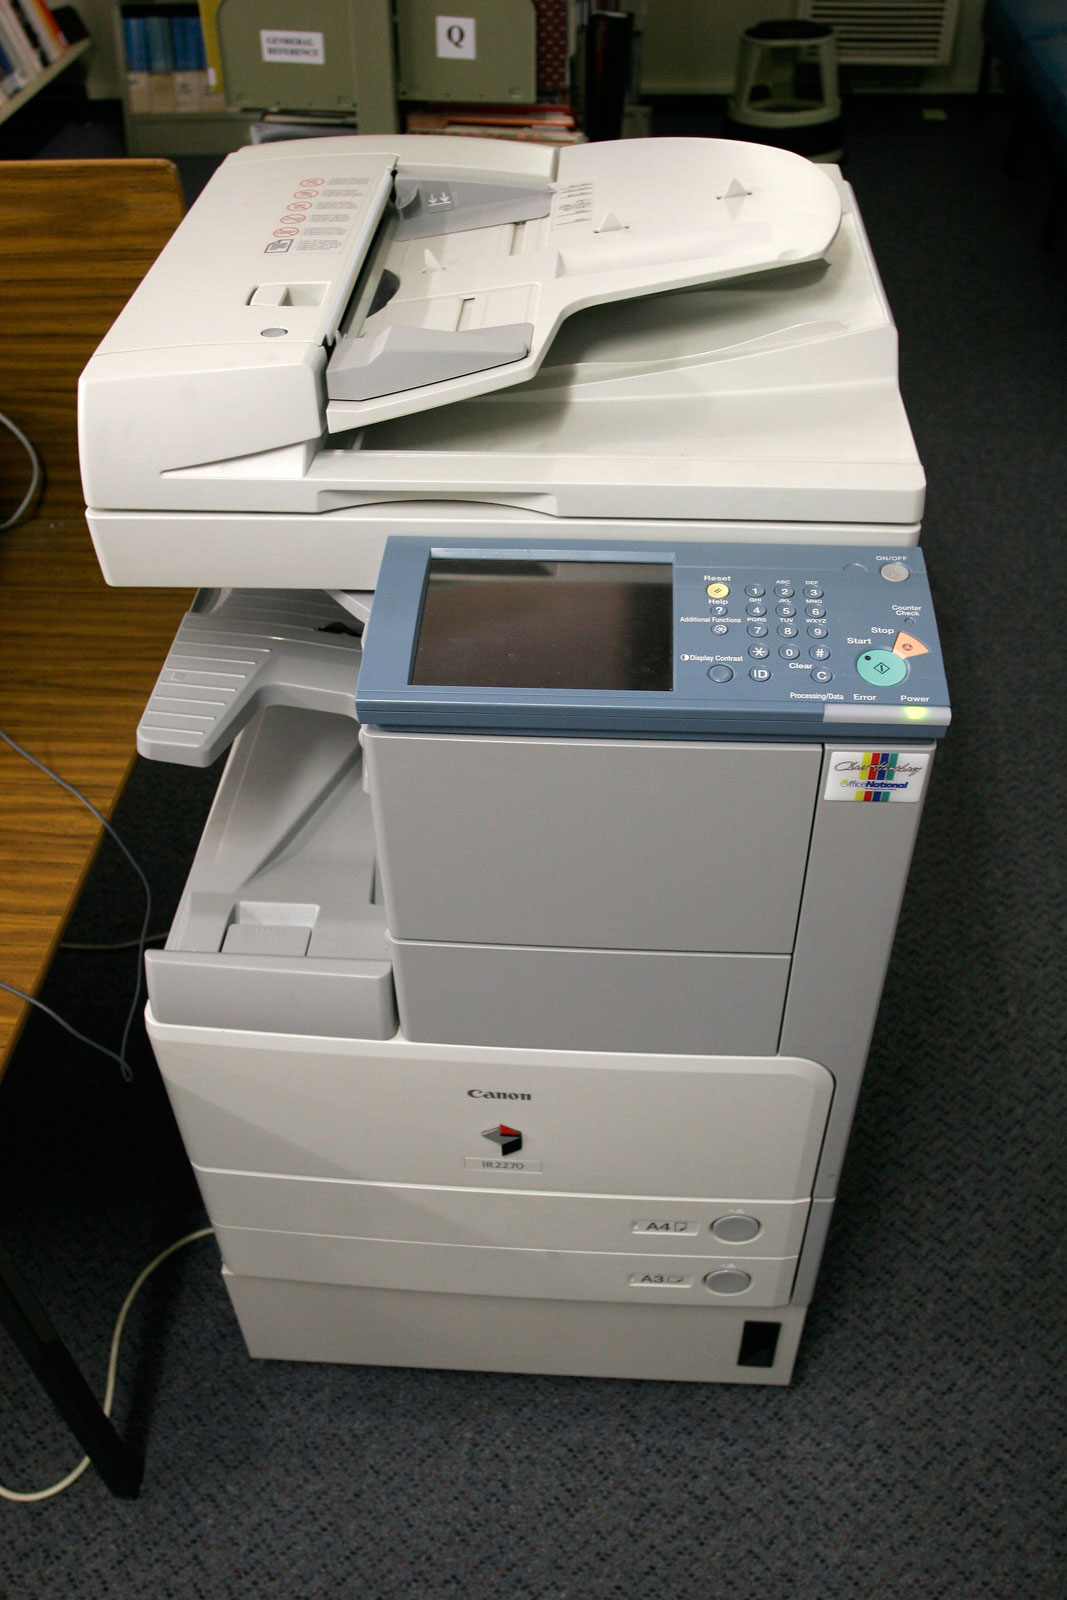 A higher end printer and scanner